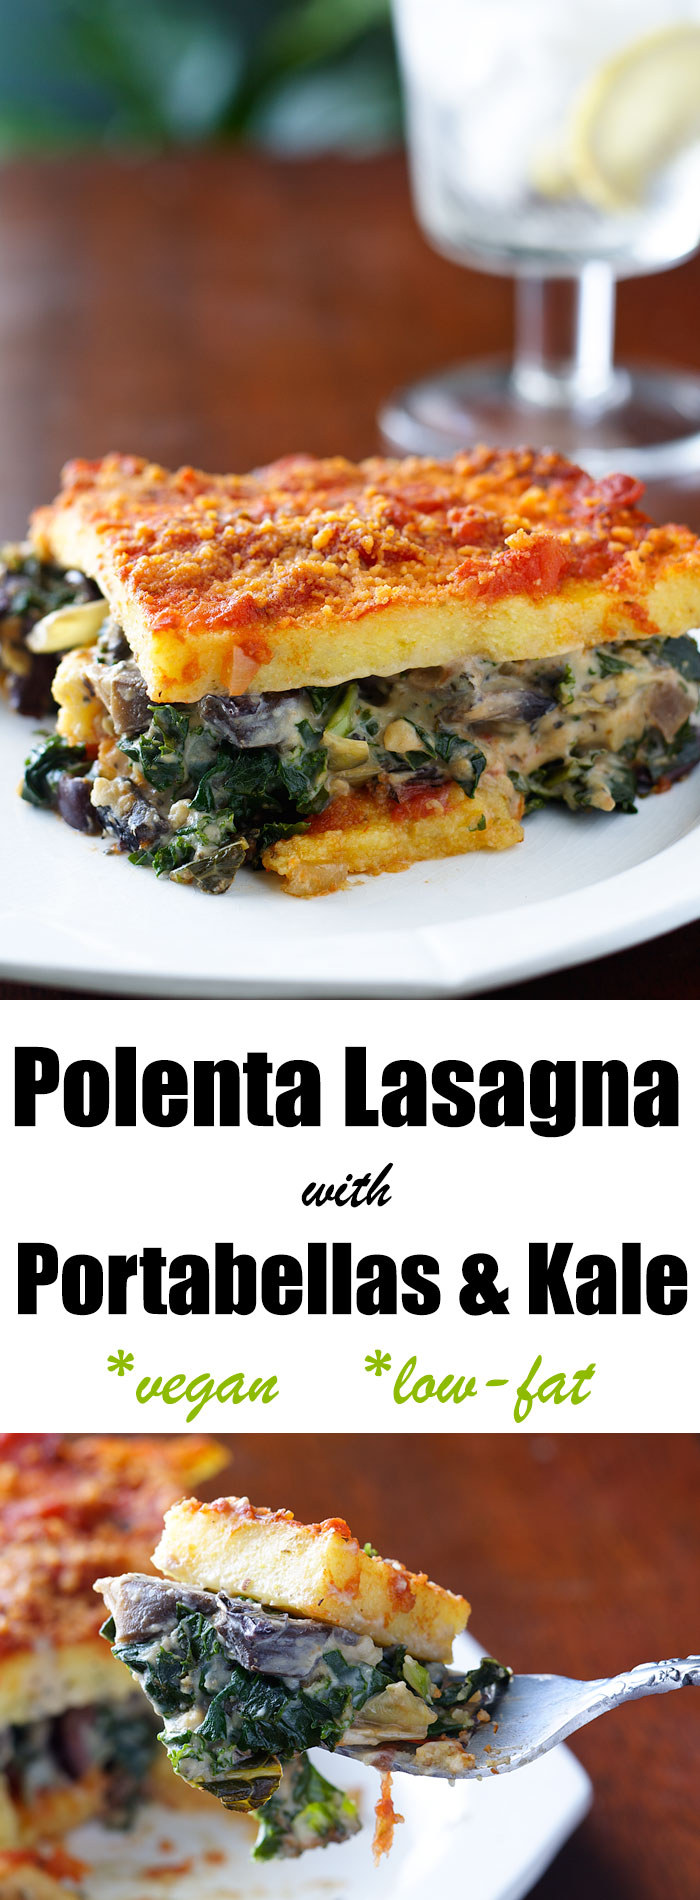 Polenta Lasagna with Portabellas and Kale | Recipe from FatFree Vegan ...